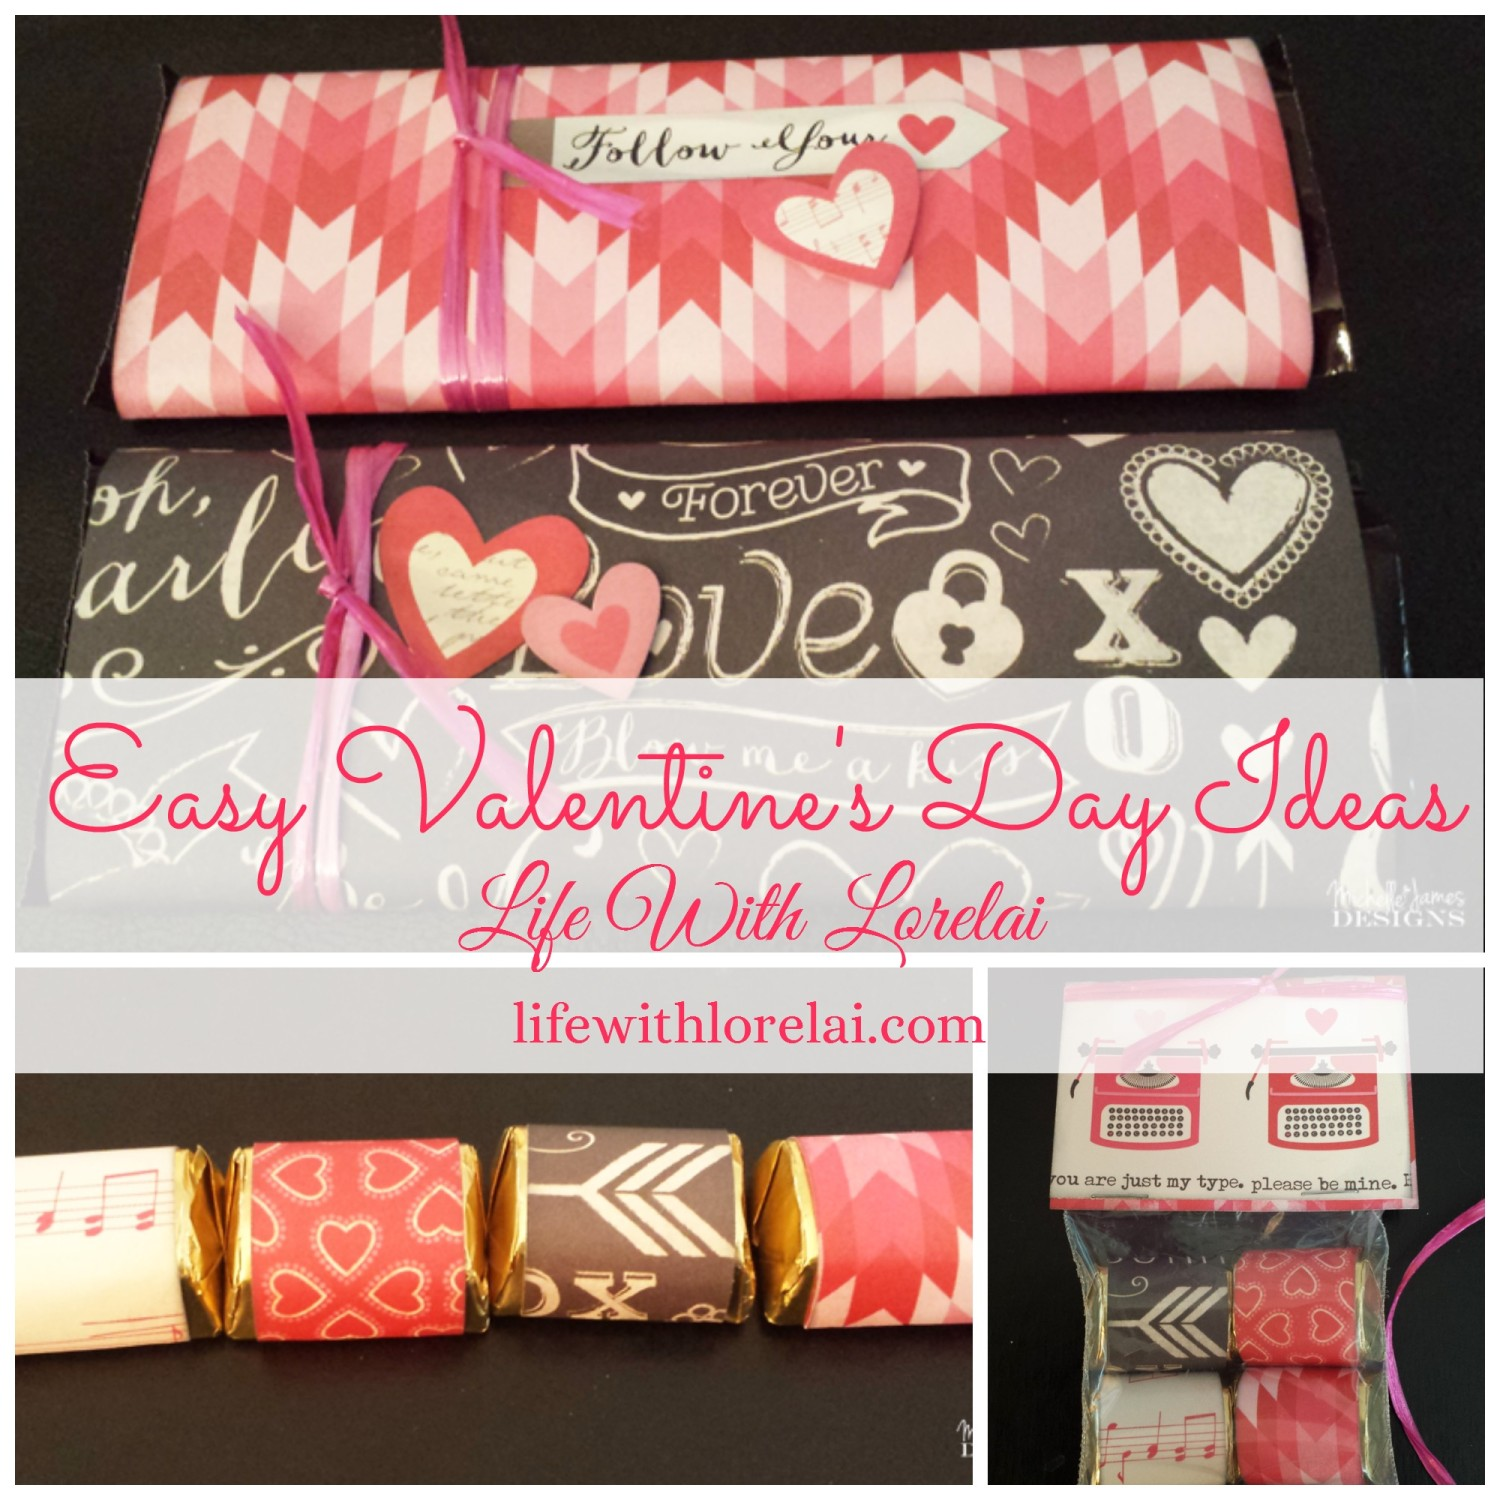 Easy Valentine's Day Ideas - Life With Lorelai